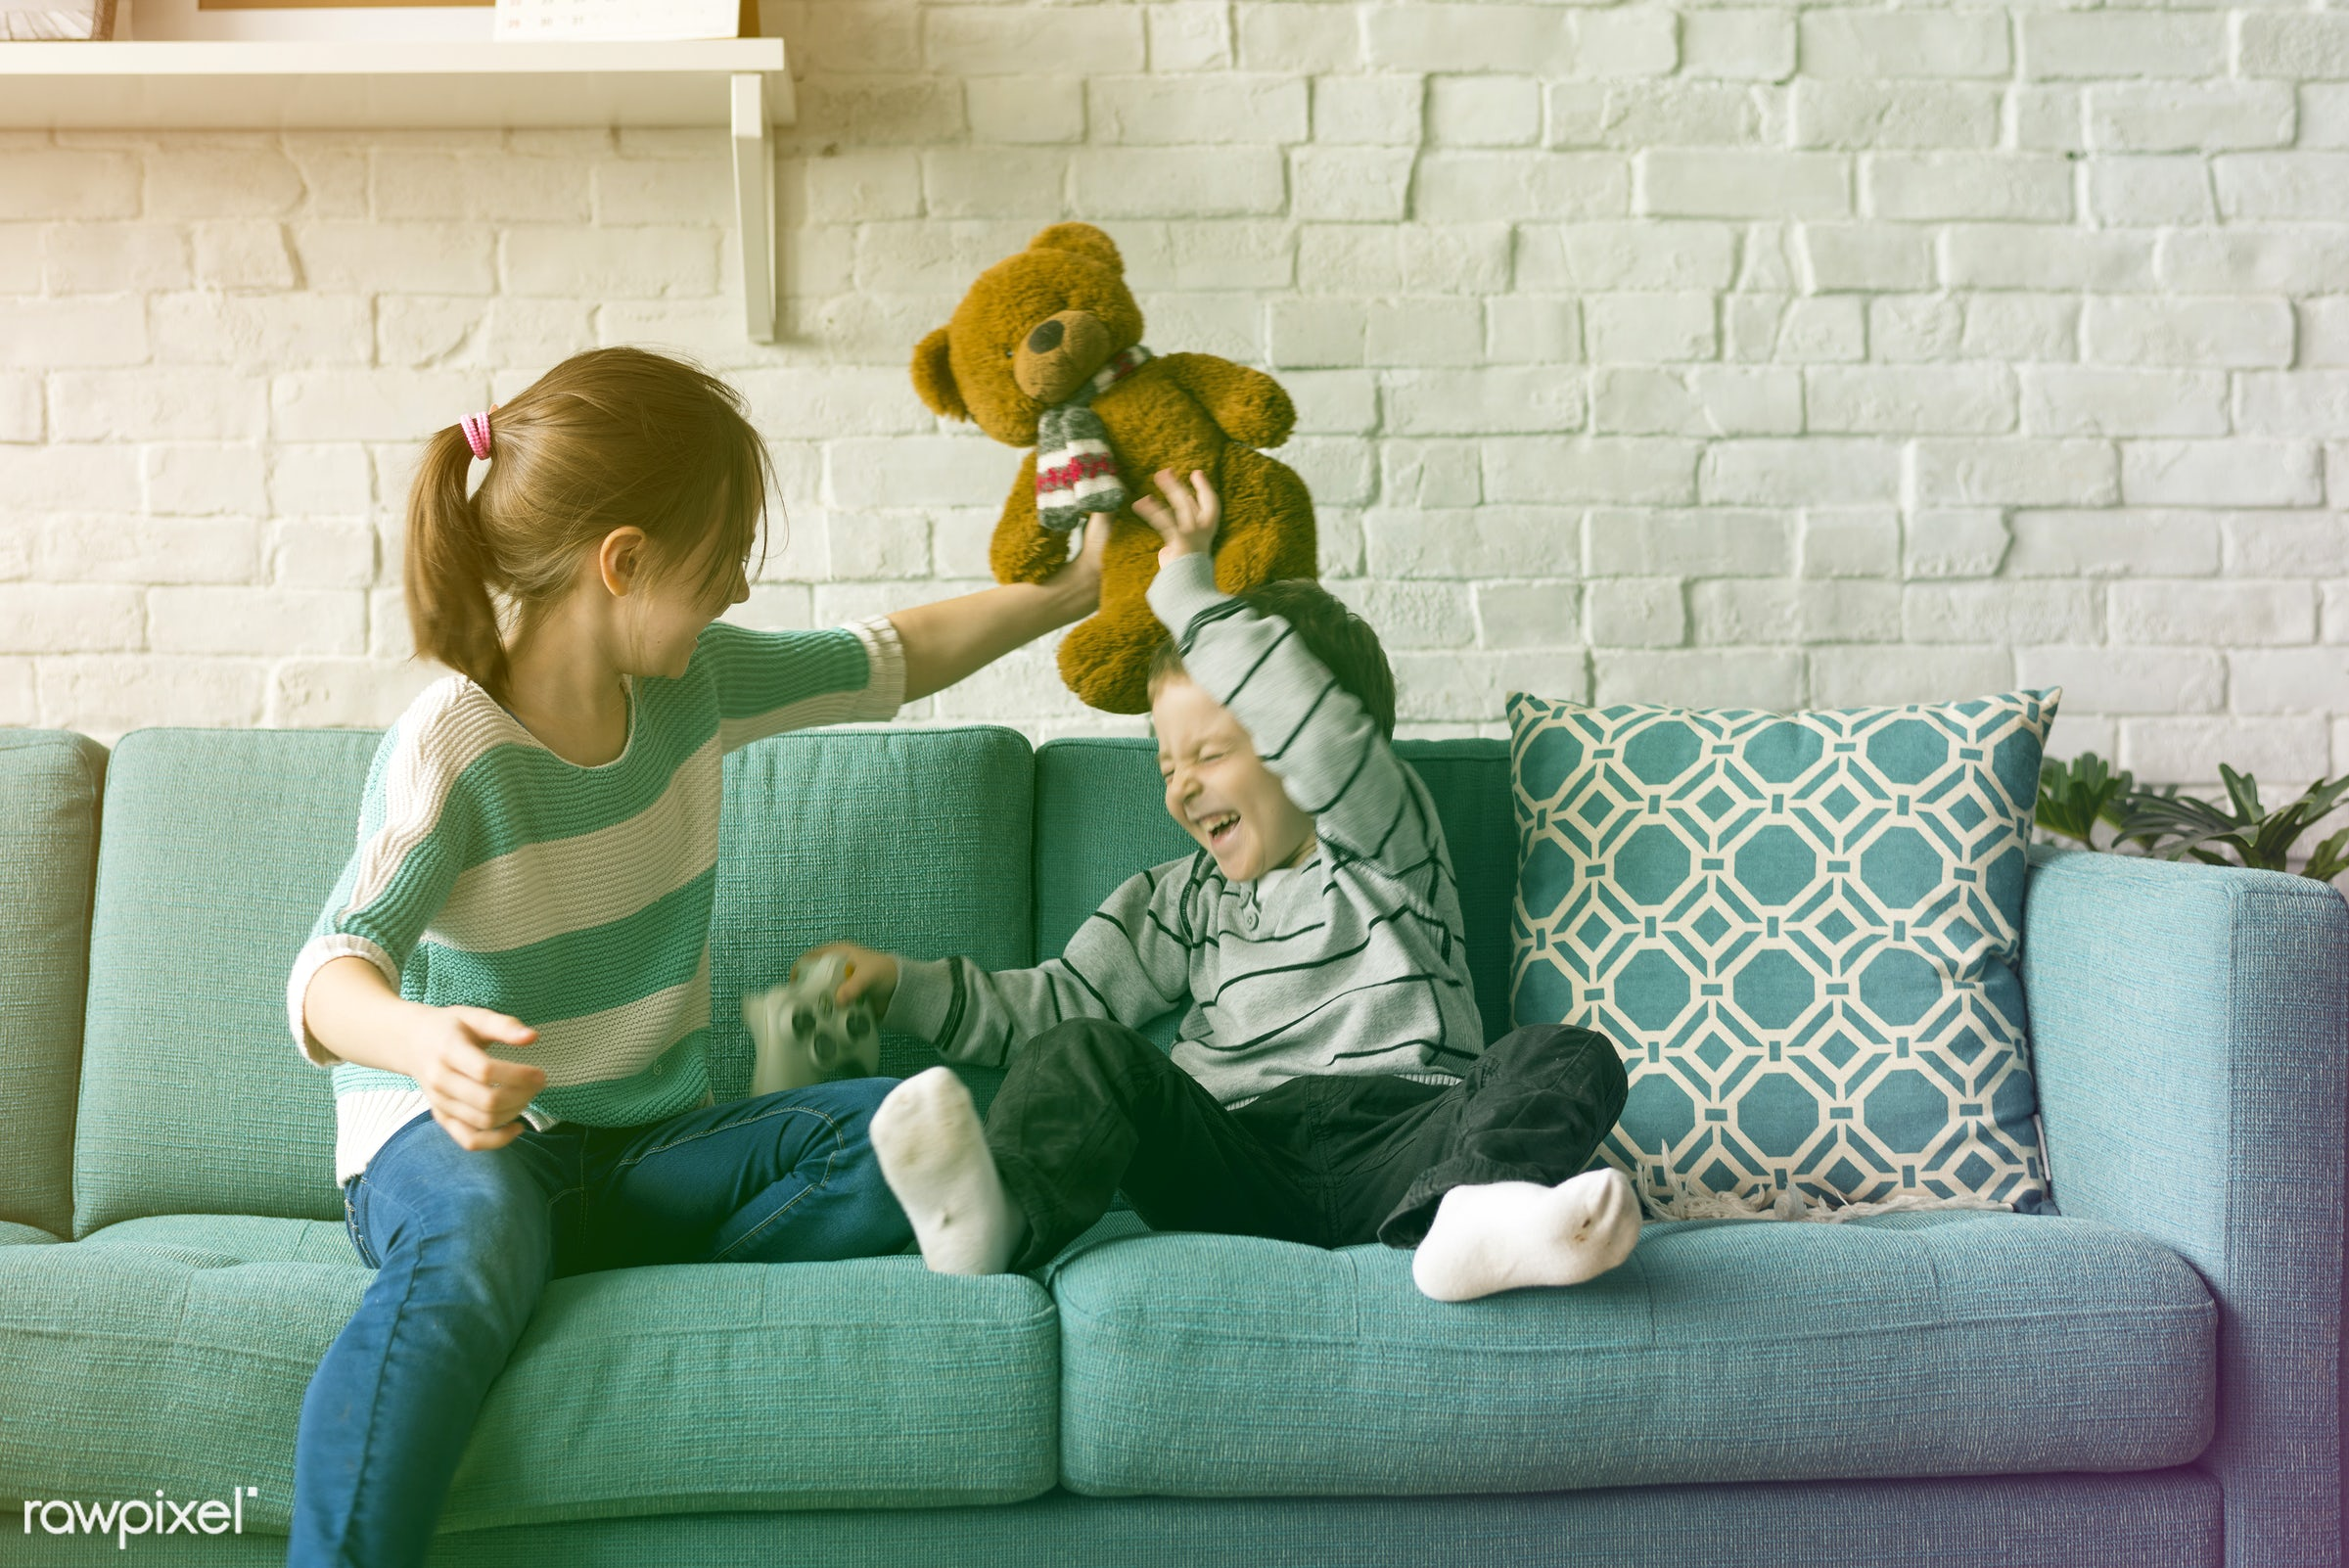 activity, brother, caucasian, cheerful, children, couch, daughter, enjoyment, european, family, filter, french, fun, game,...